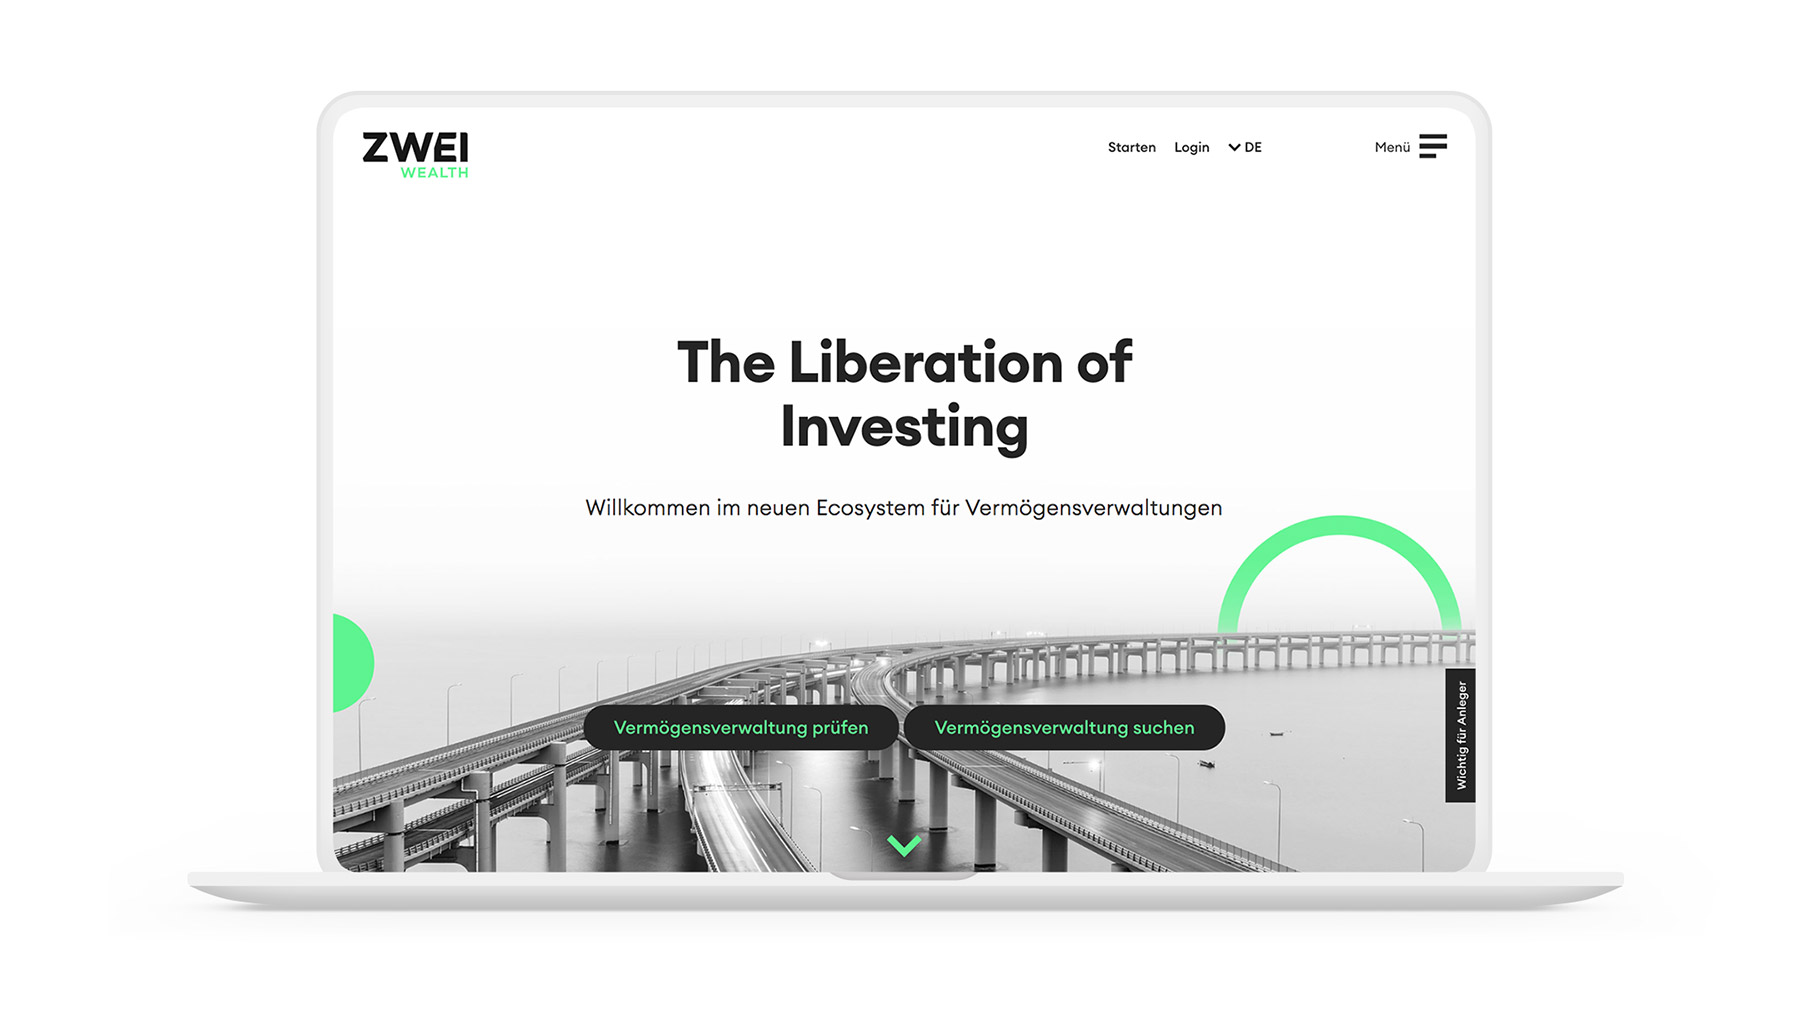 Projekt ZWEI Wealth Website